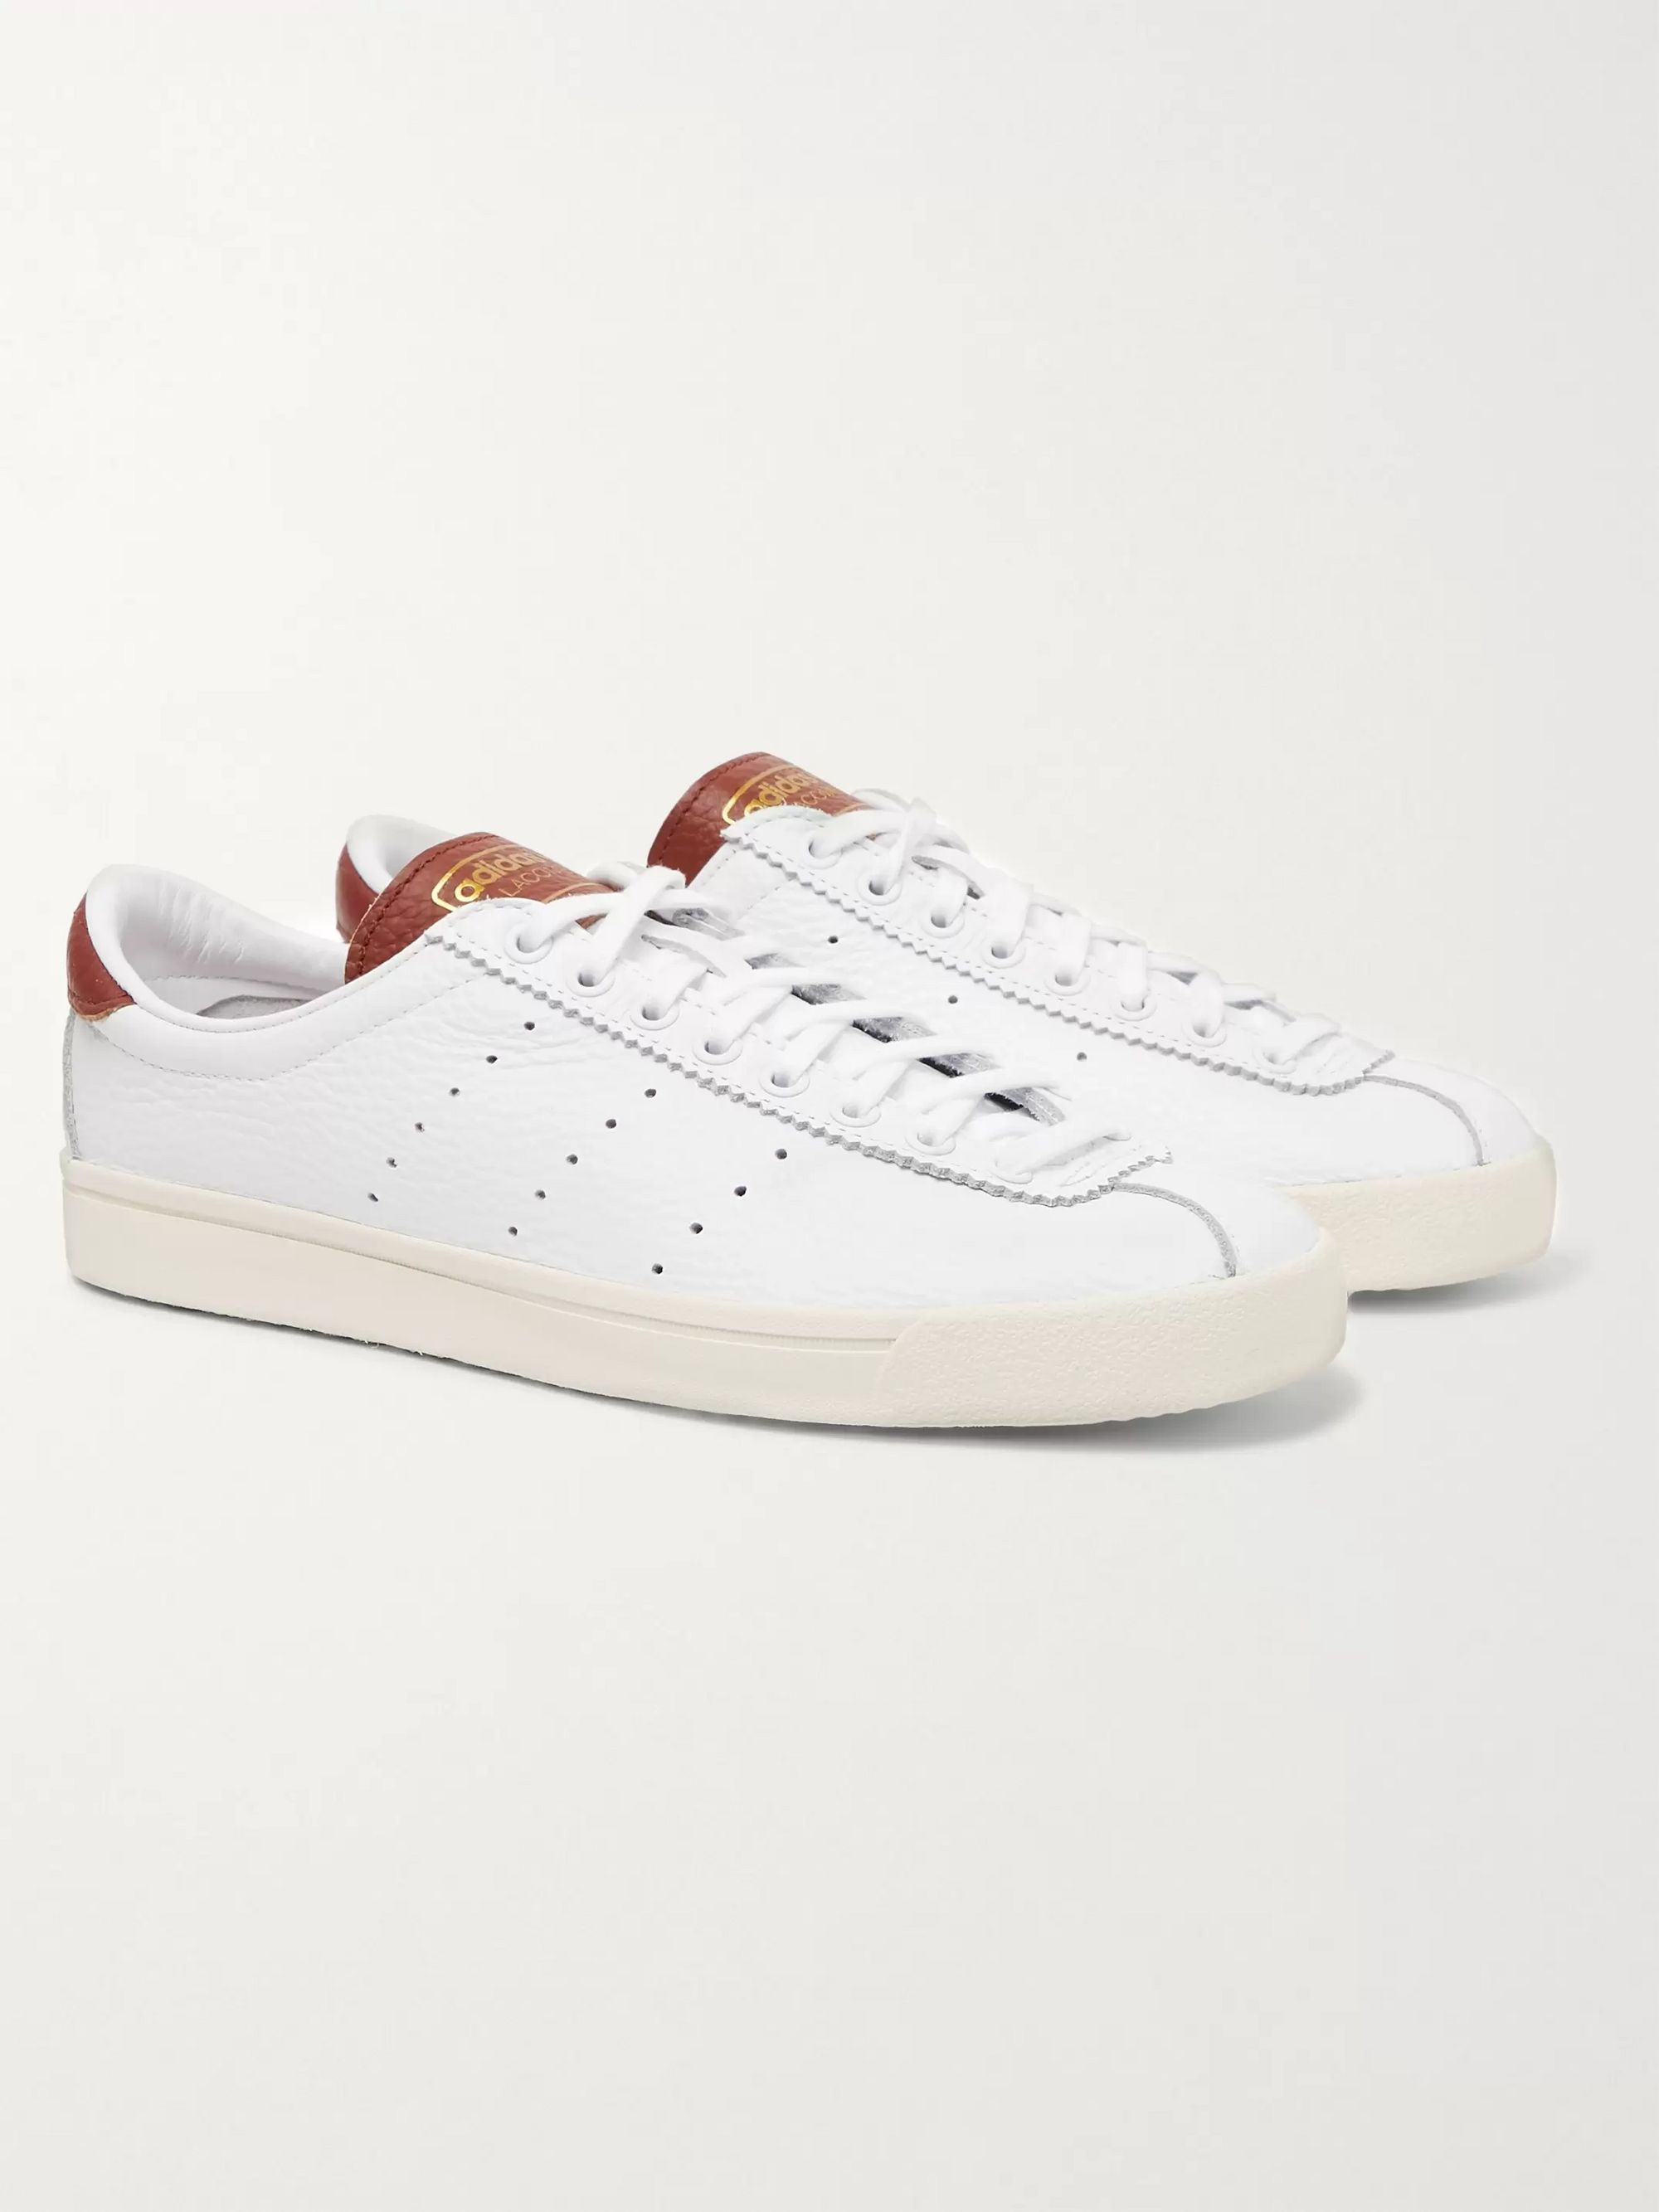 Adidas Originals Country II Leather Sneakers